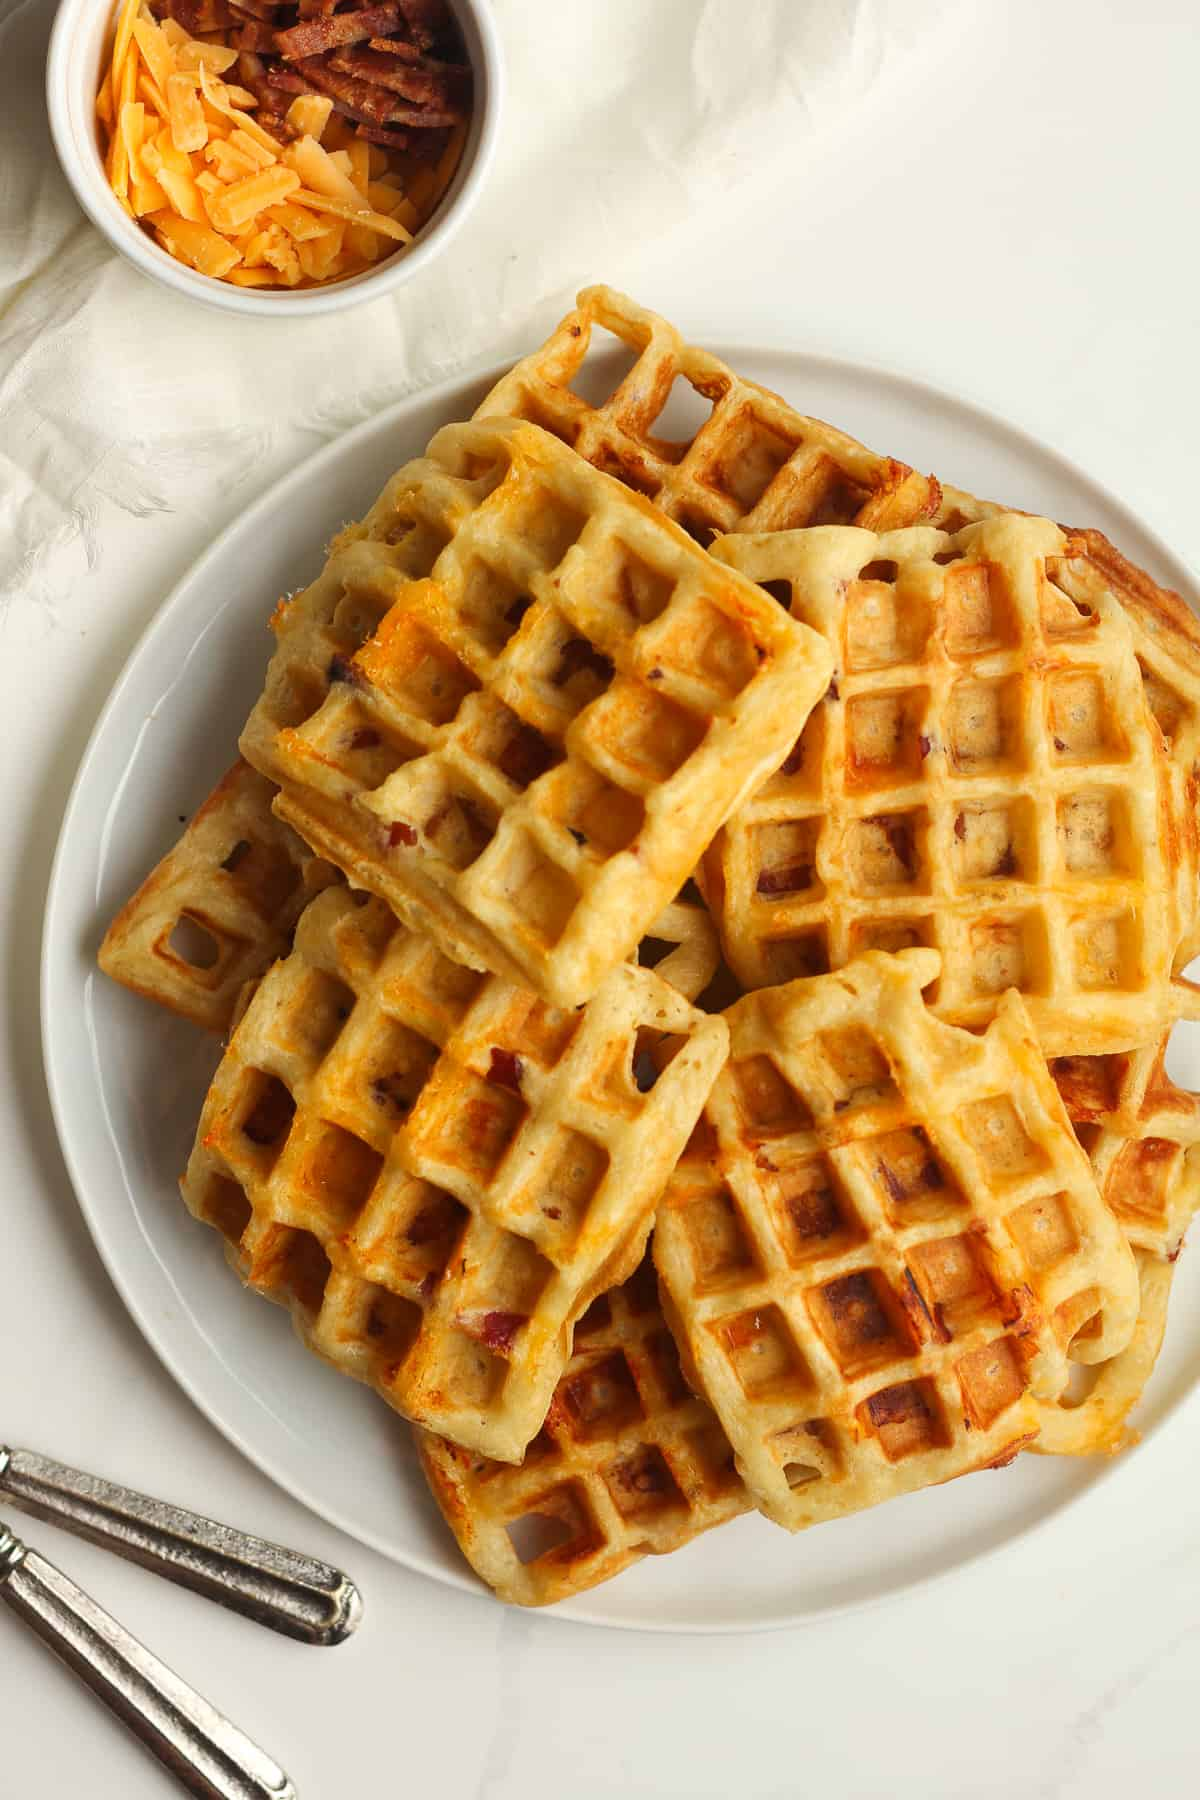 A plate of bacon cheddar waffles.